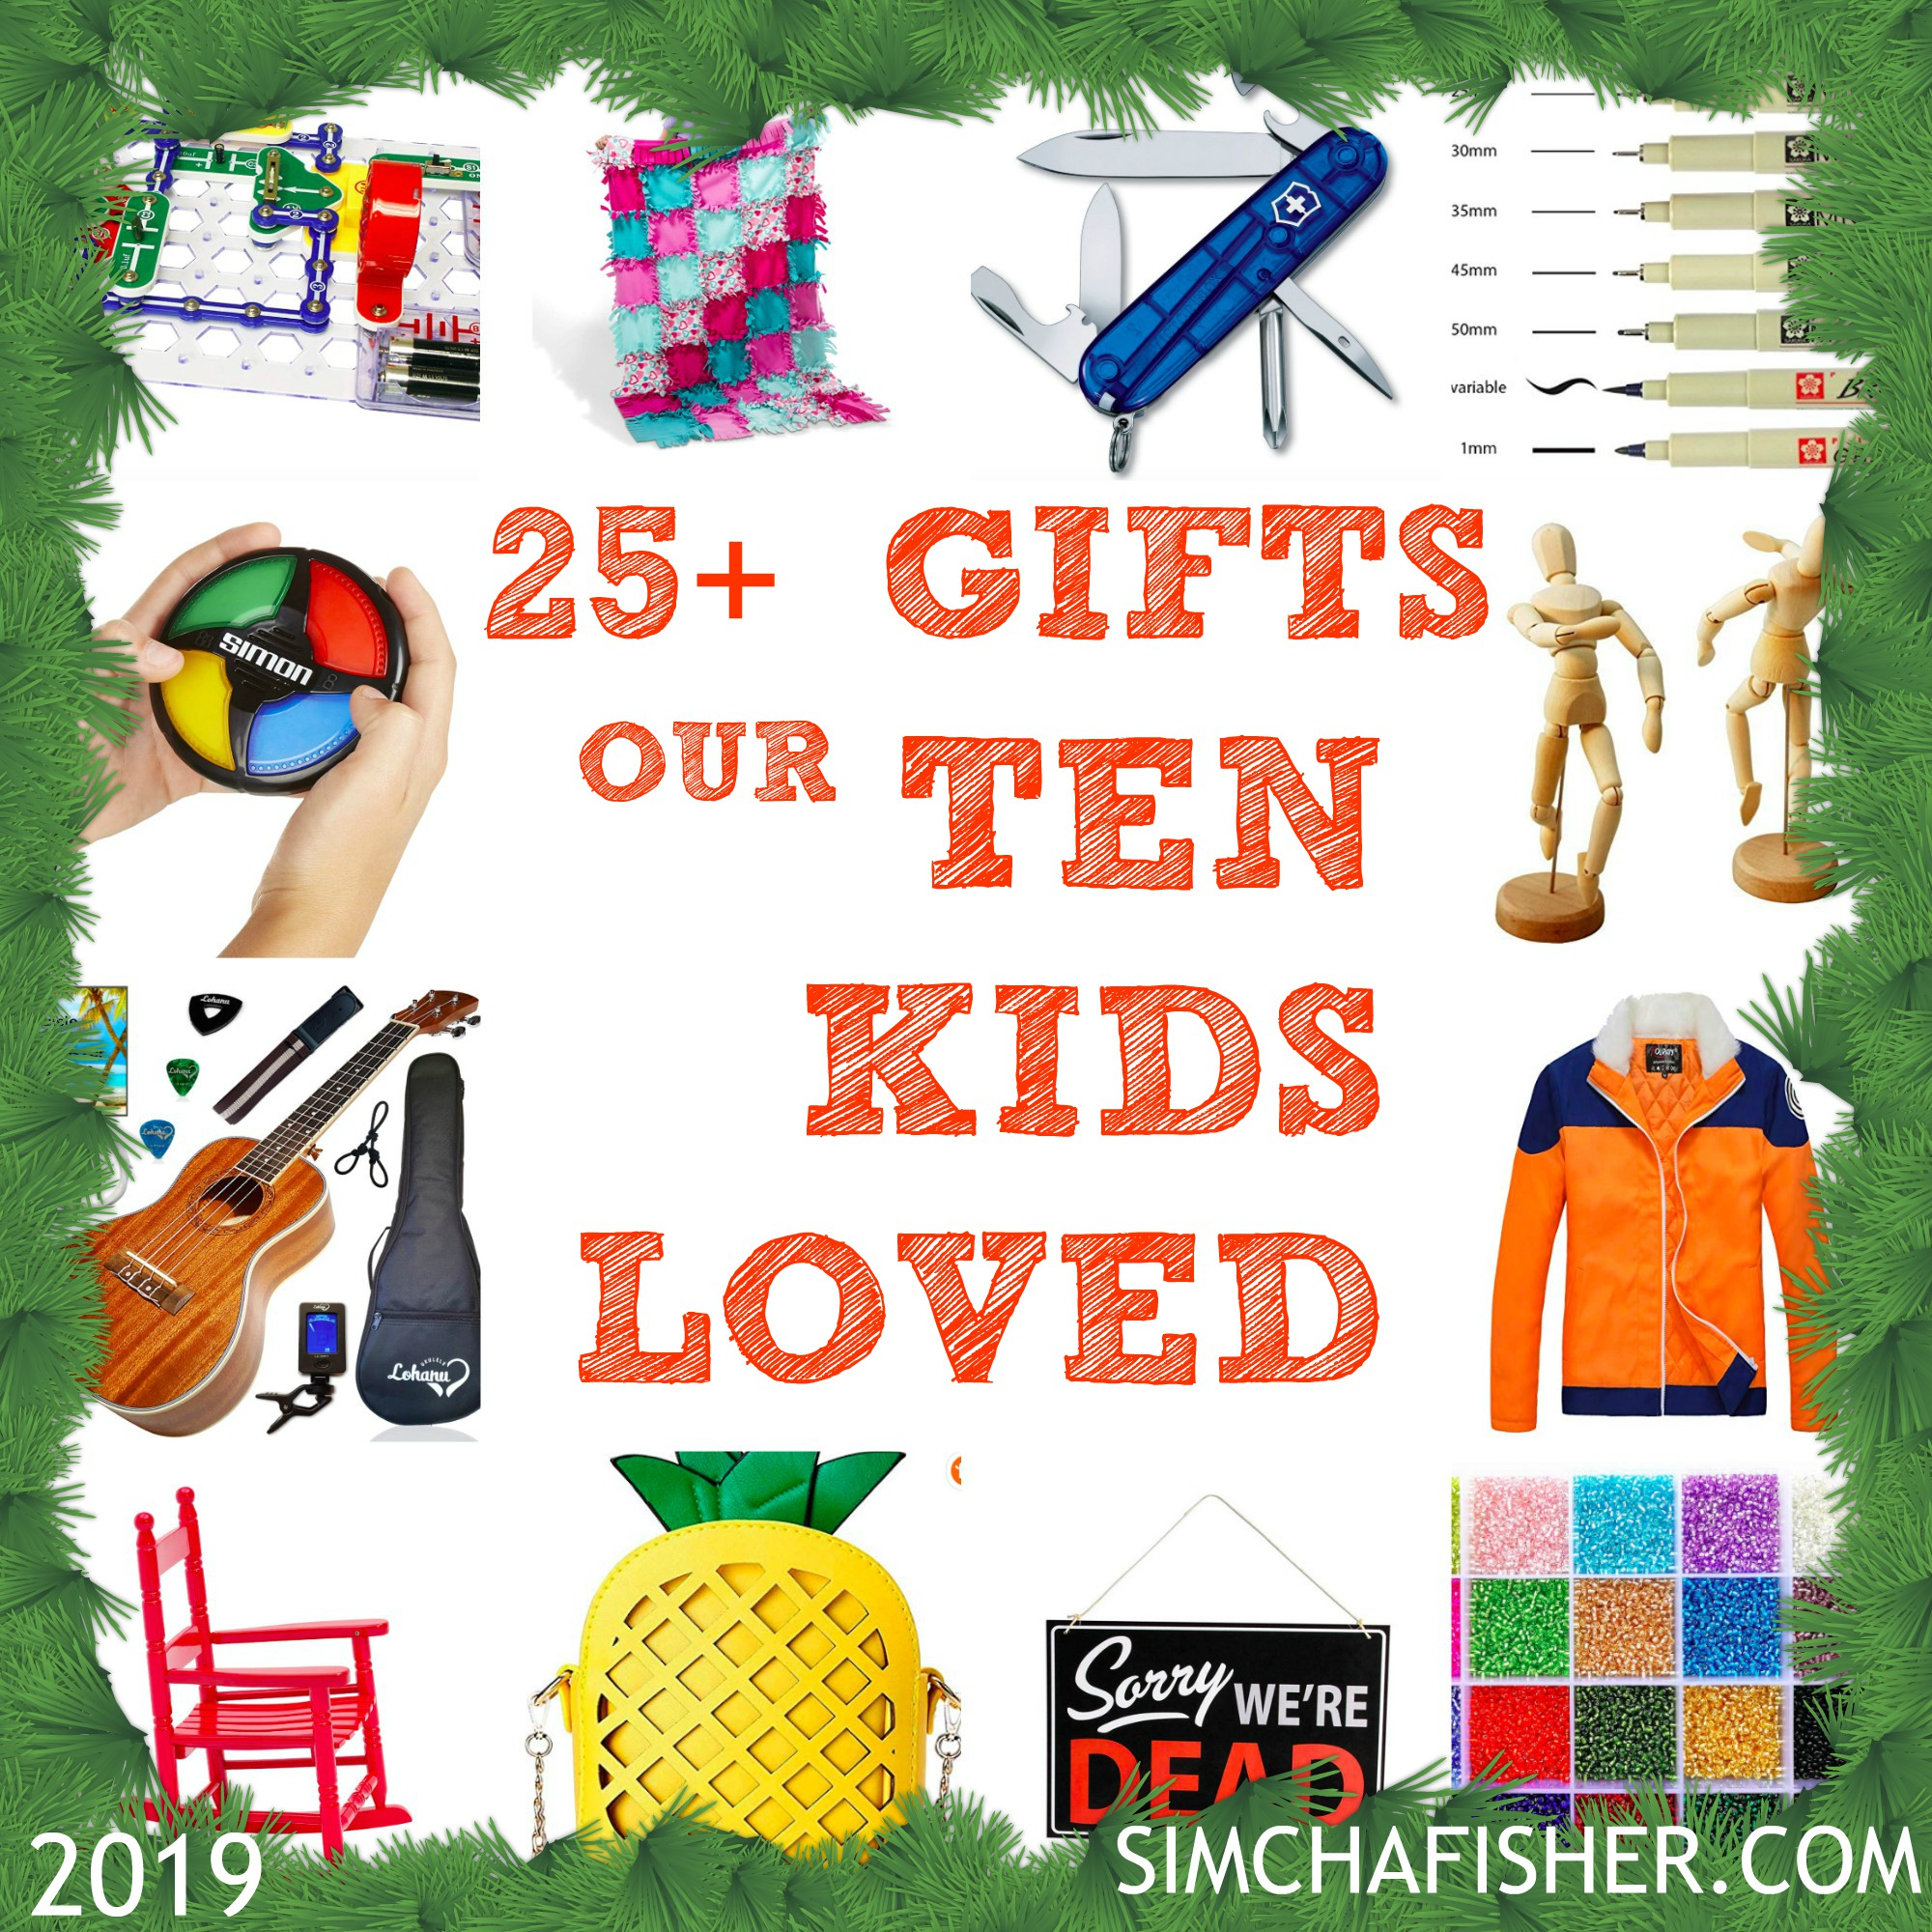 25+ gifts our 10 kids loved! The 2019 Christmas list